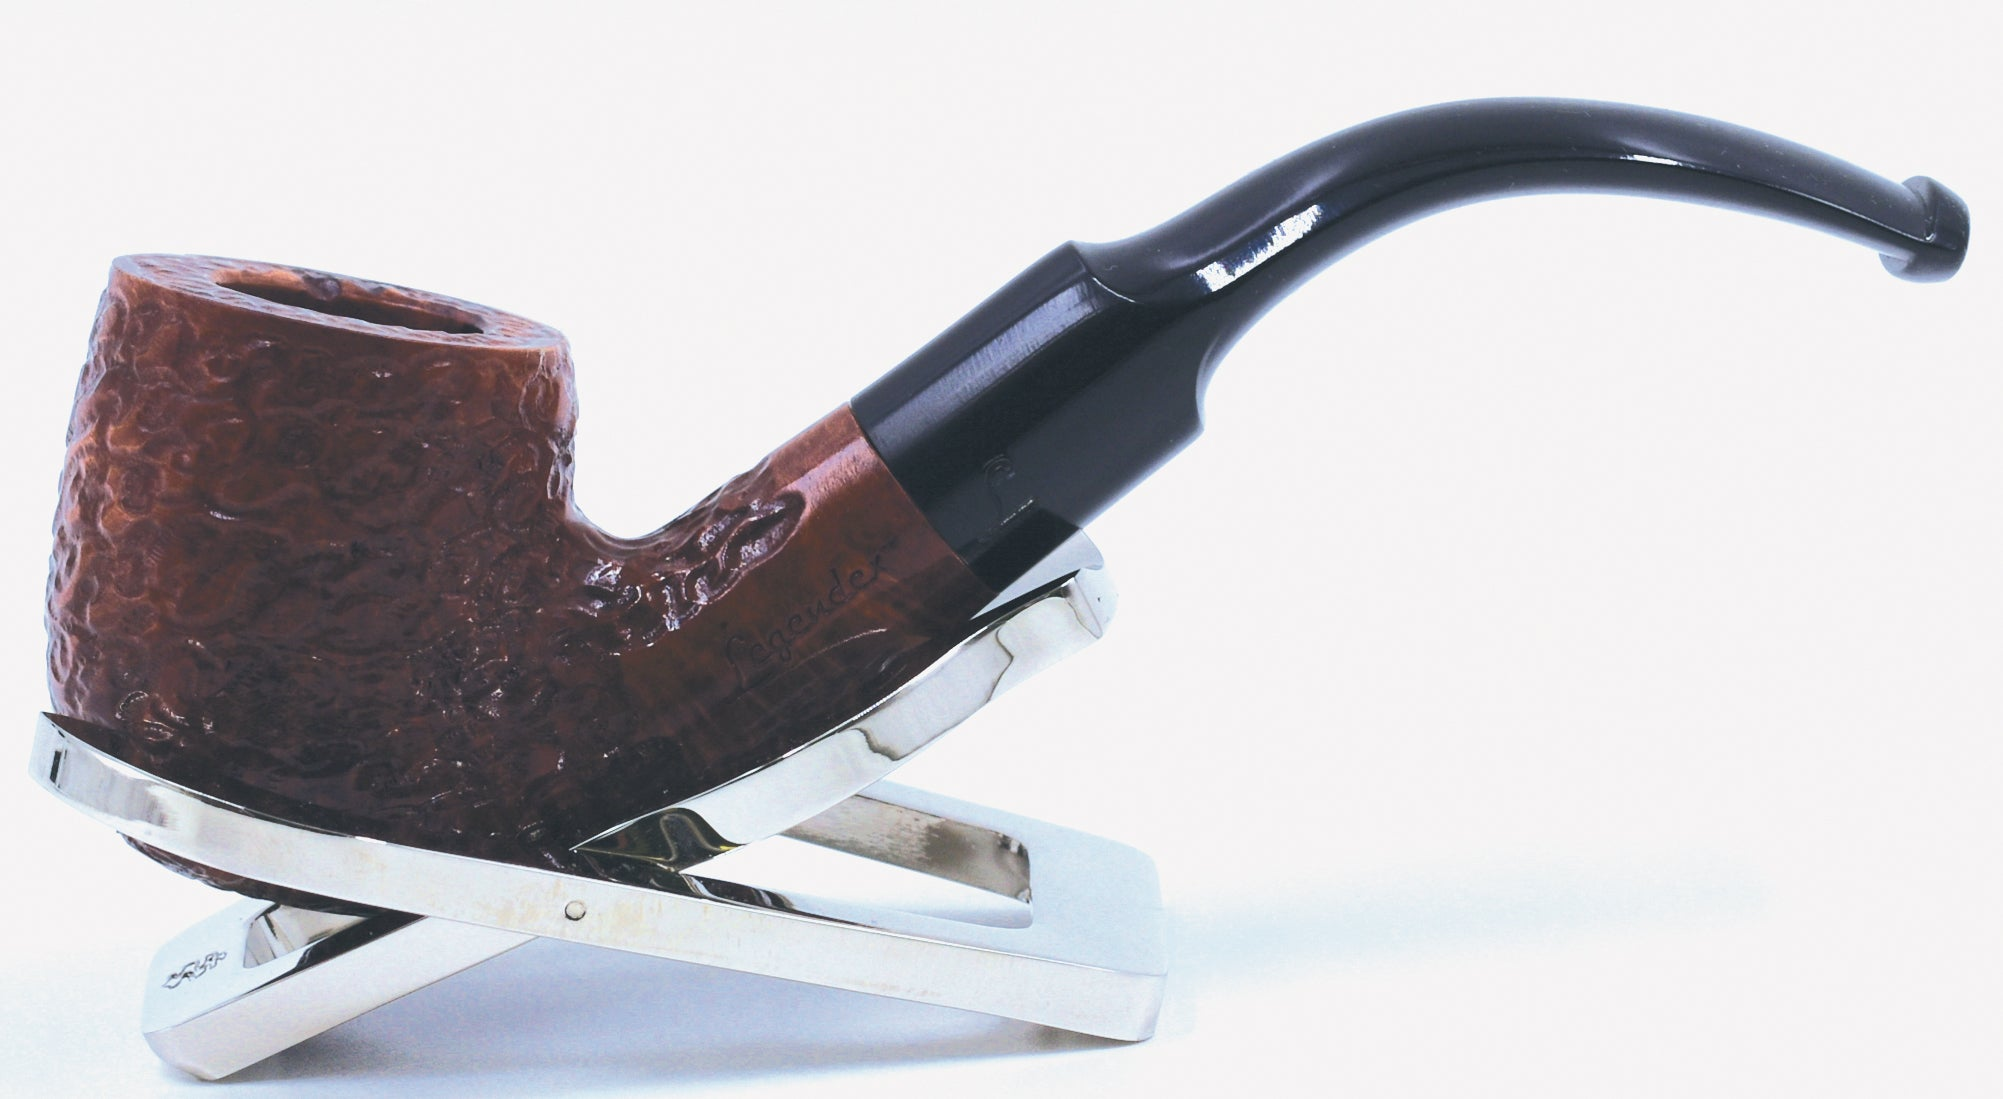 LEGENDEX® SCALADI* 6 MM Filtered Briar Smoking Pipe Made In Italy 01-08-106